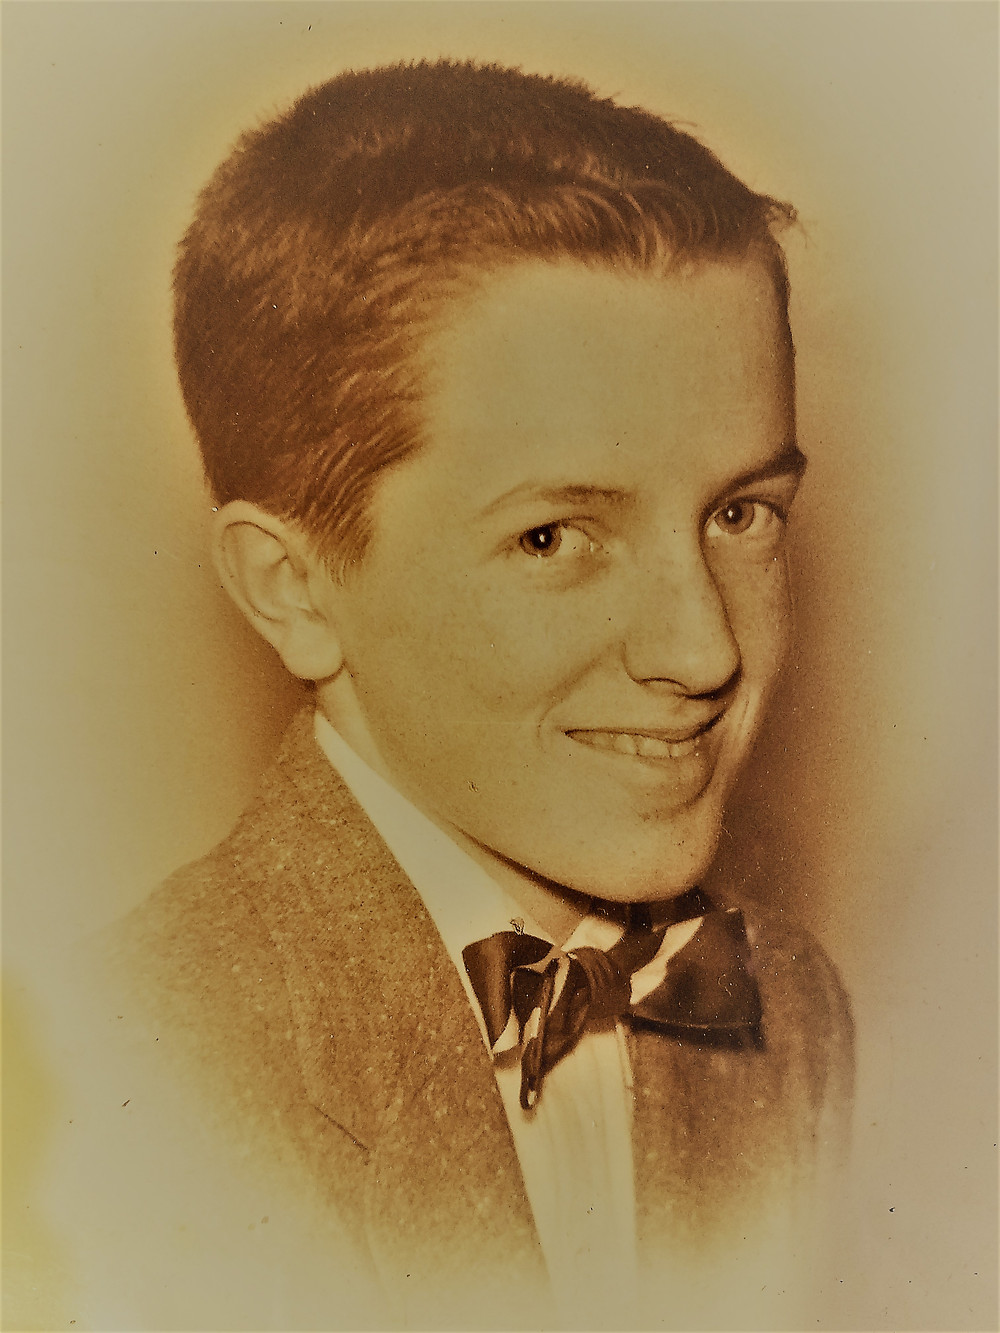 Al at fourteen years, dressed in suit and bow tie for eighth grade graduation. Sepia photo.